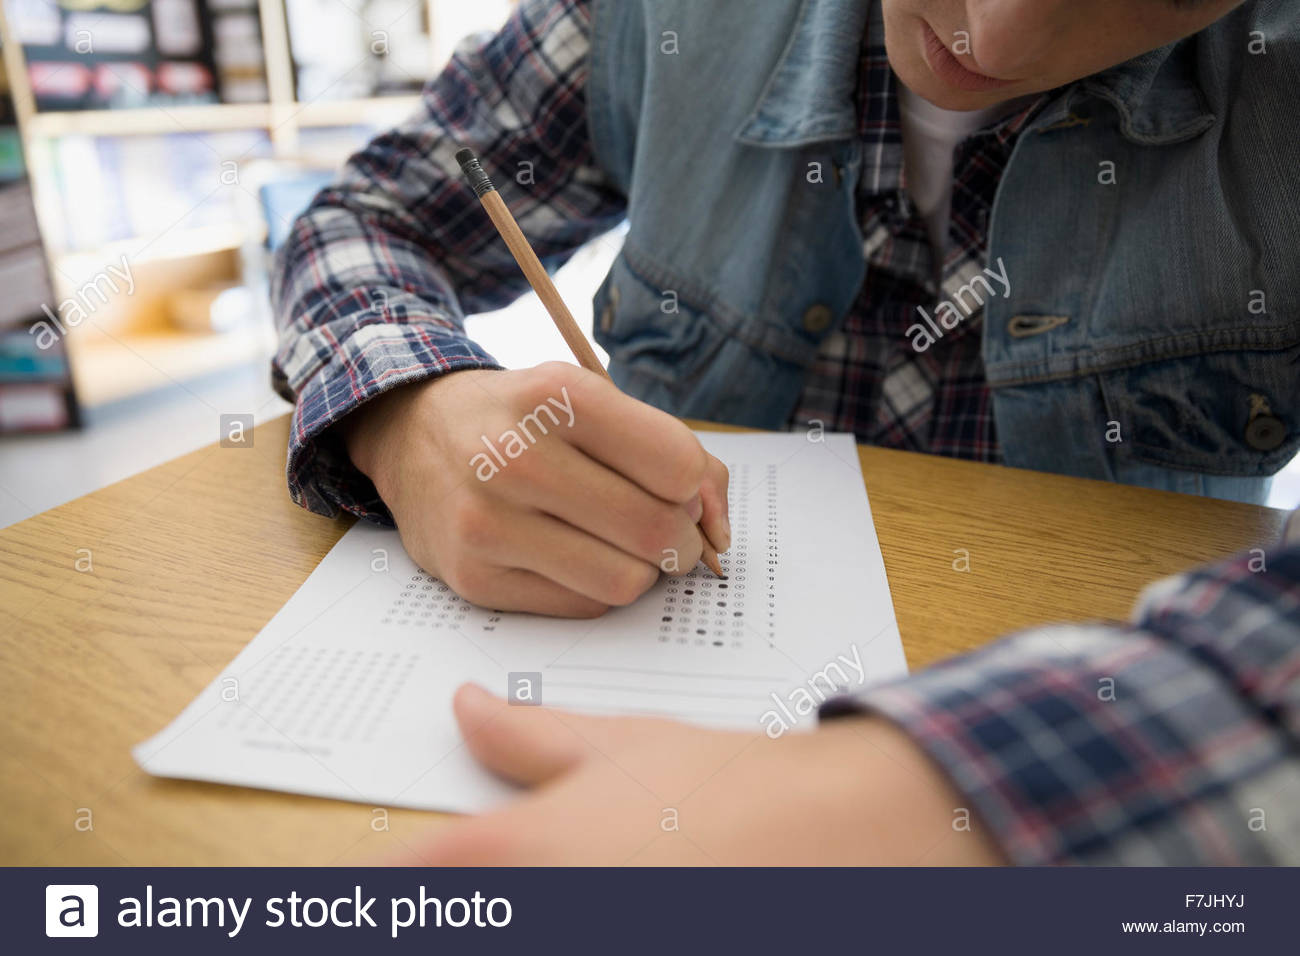 High school student completing multiple choice test form - Stock Image